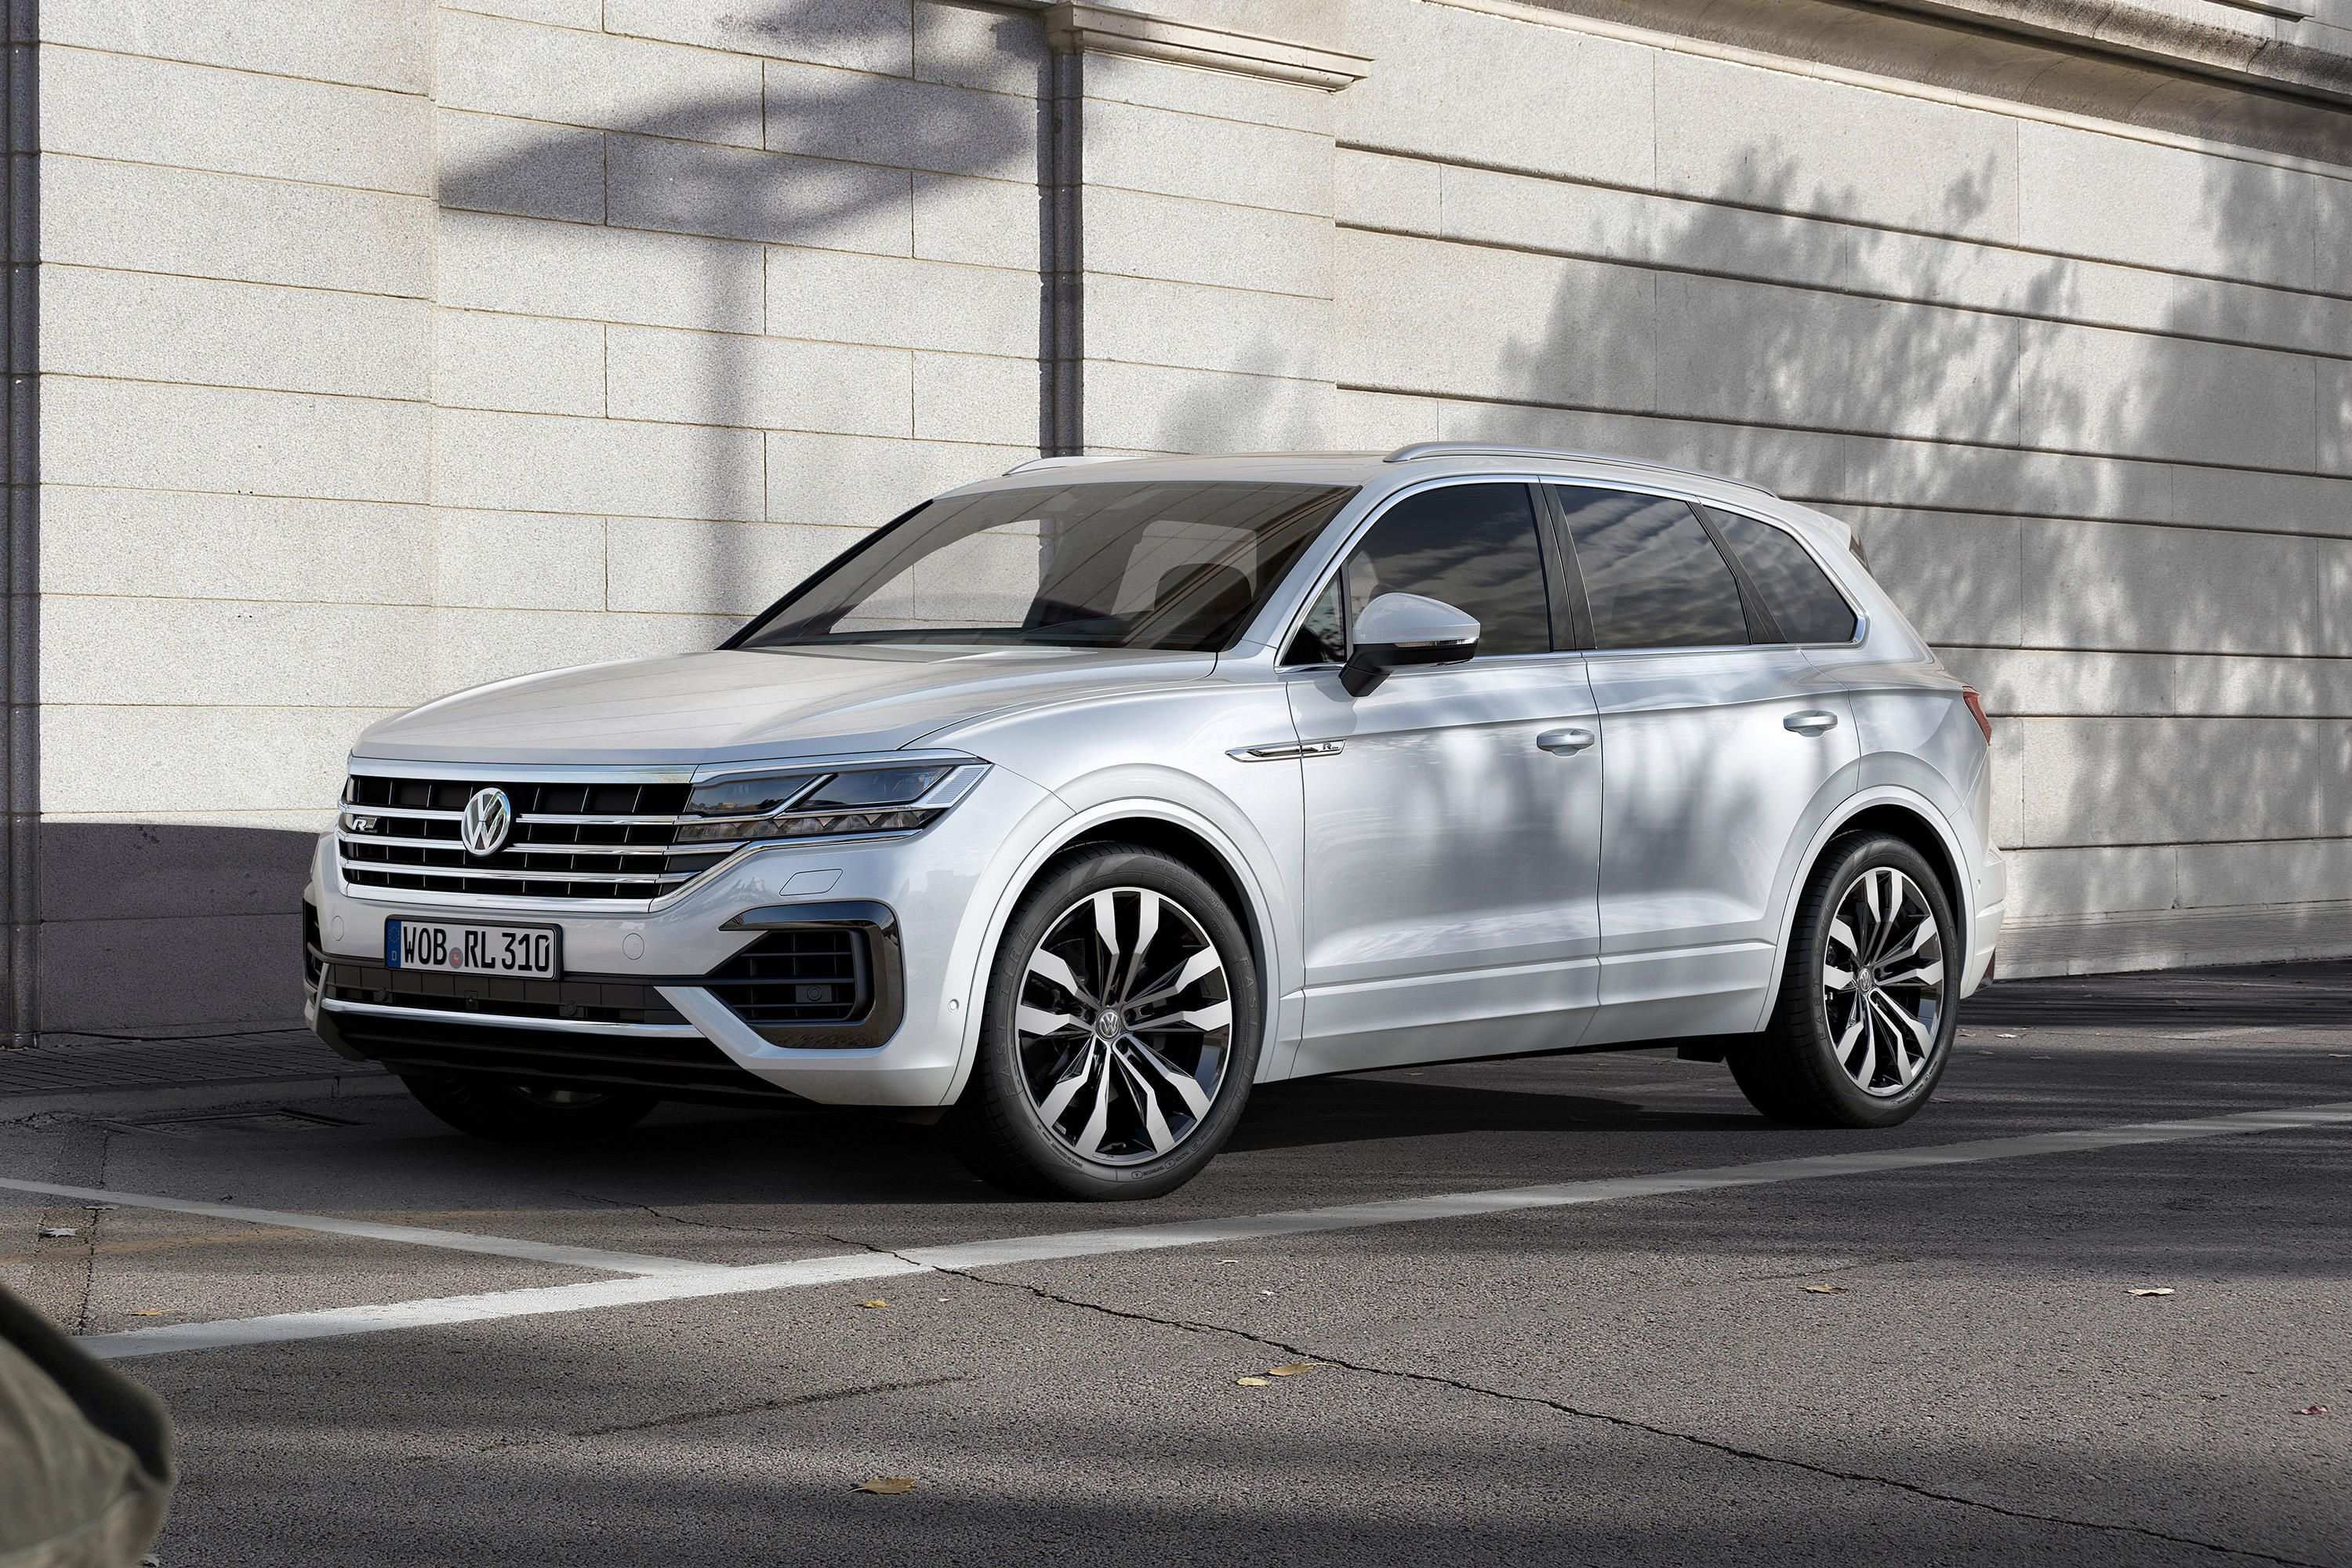 86 New 2019 Volkswagen Touareg Research New by 2019 Volkswagen Touareg